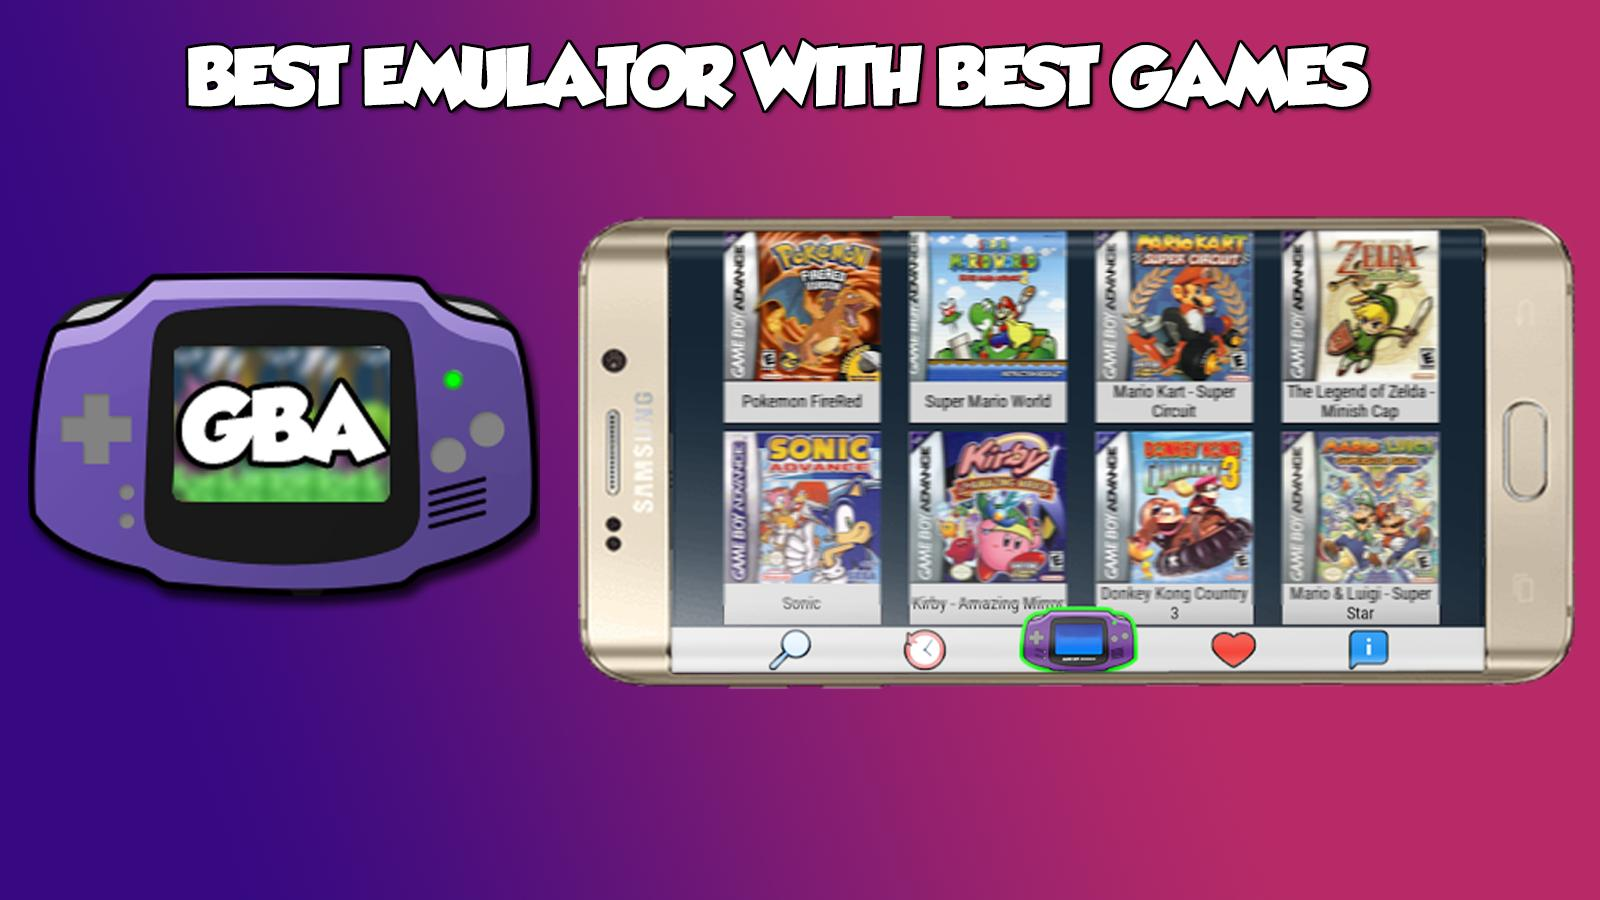 Emulator for GBA - Classic Games for Android - APK Download